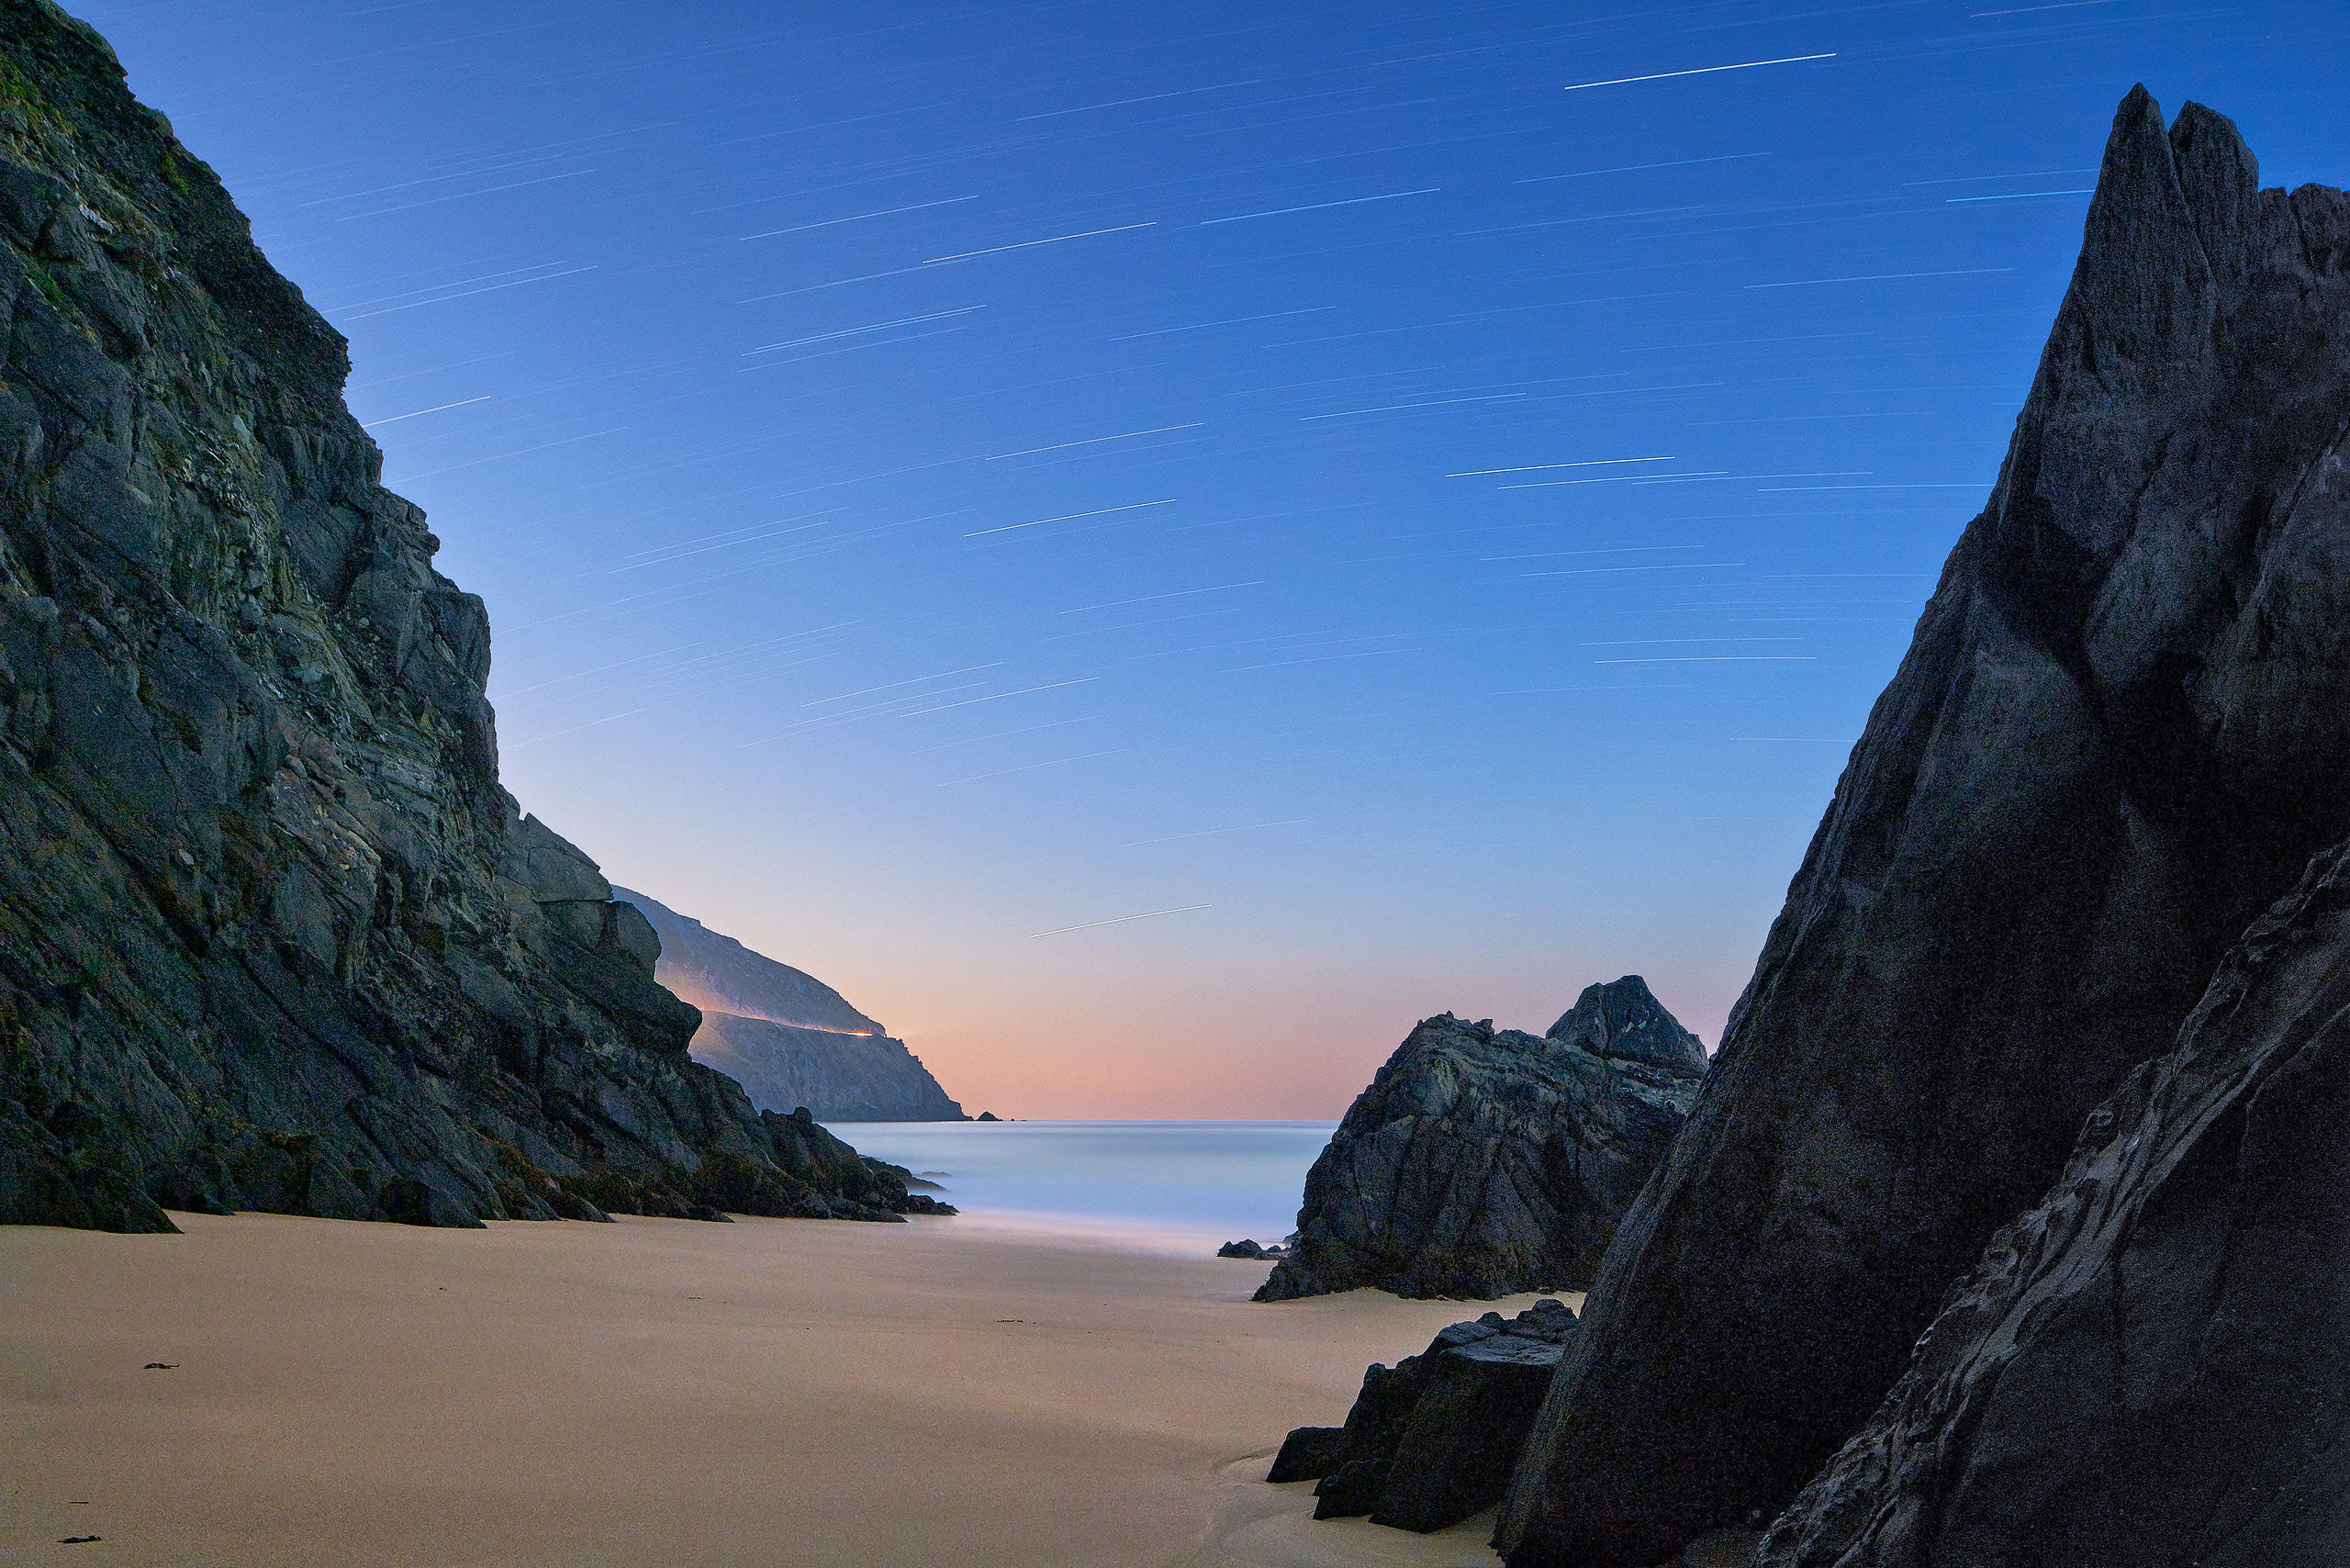 Coumeenole beach Astrophotography night time photo